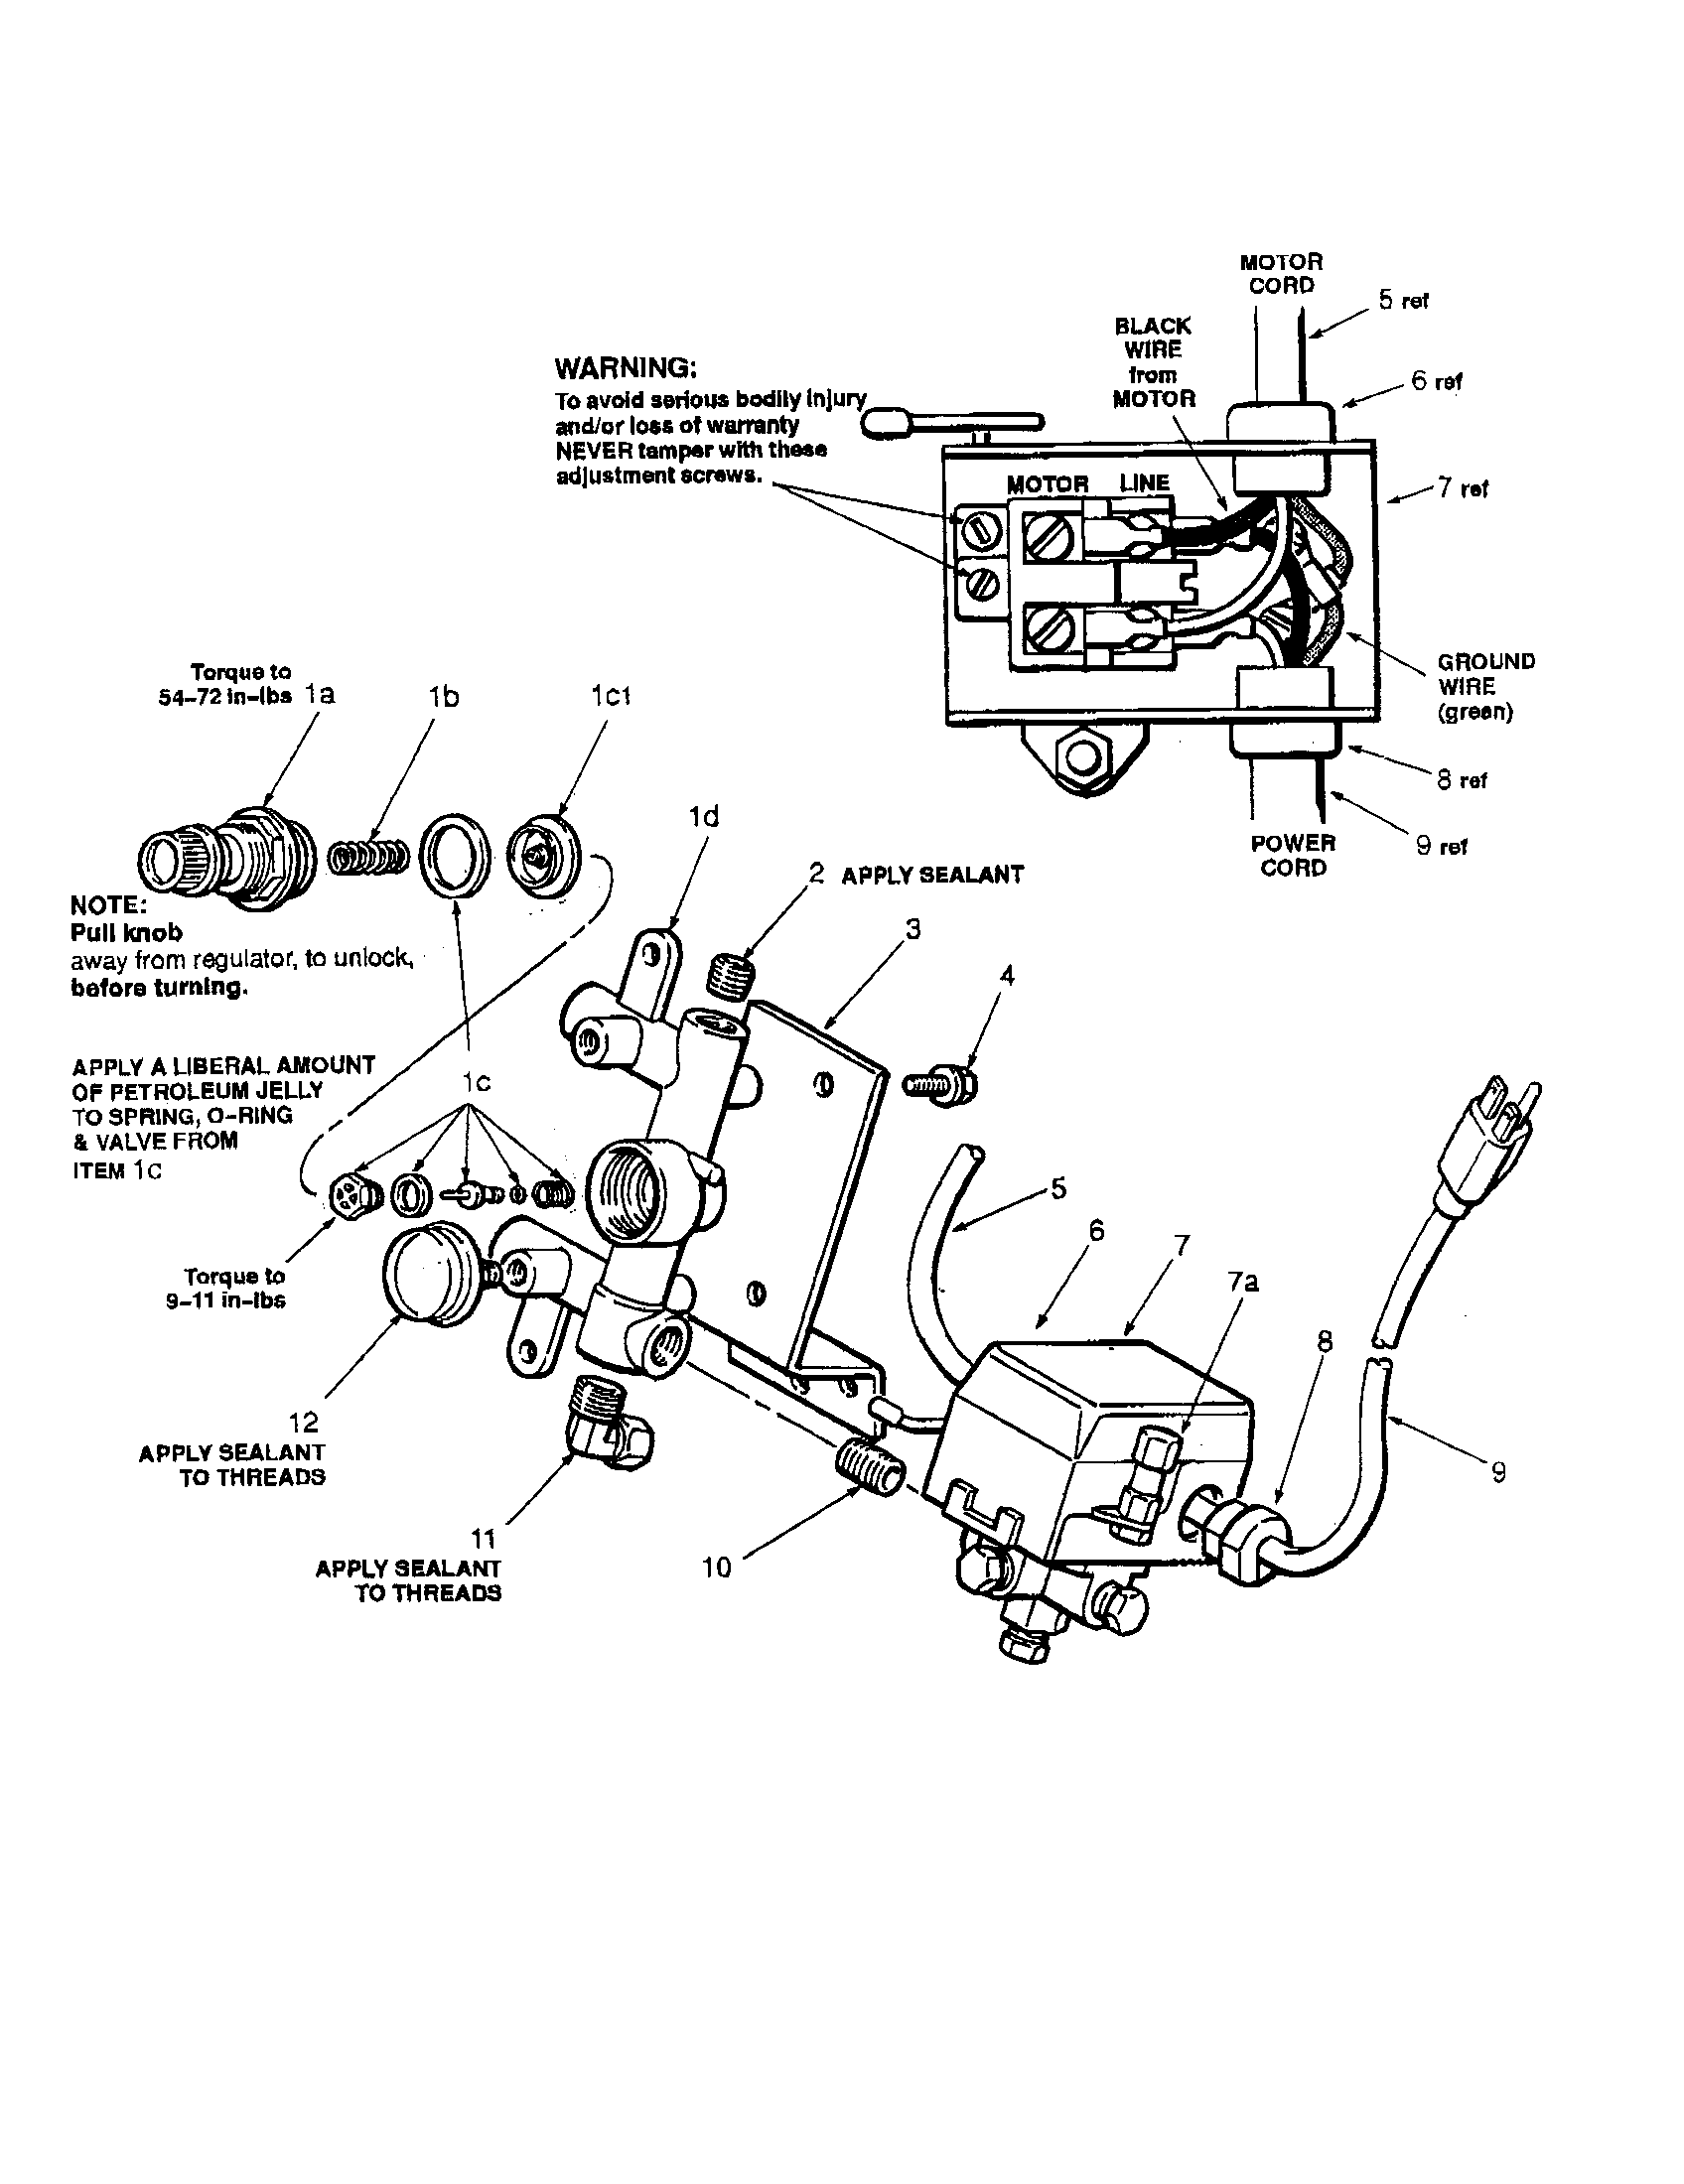 Sanborn Compressor Wiring Diagram $ Apktodownload.com